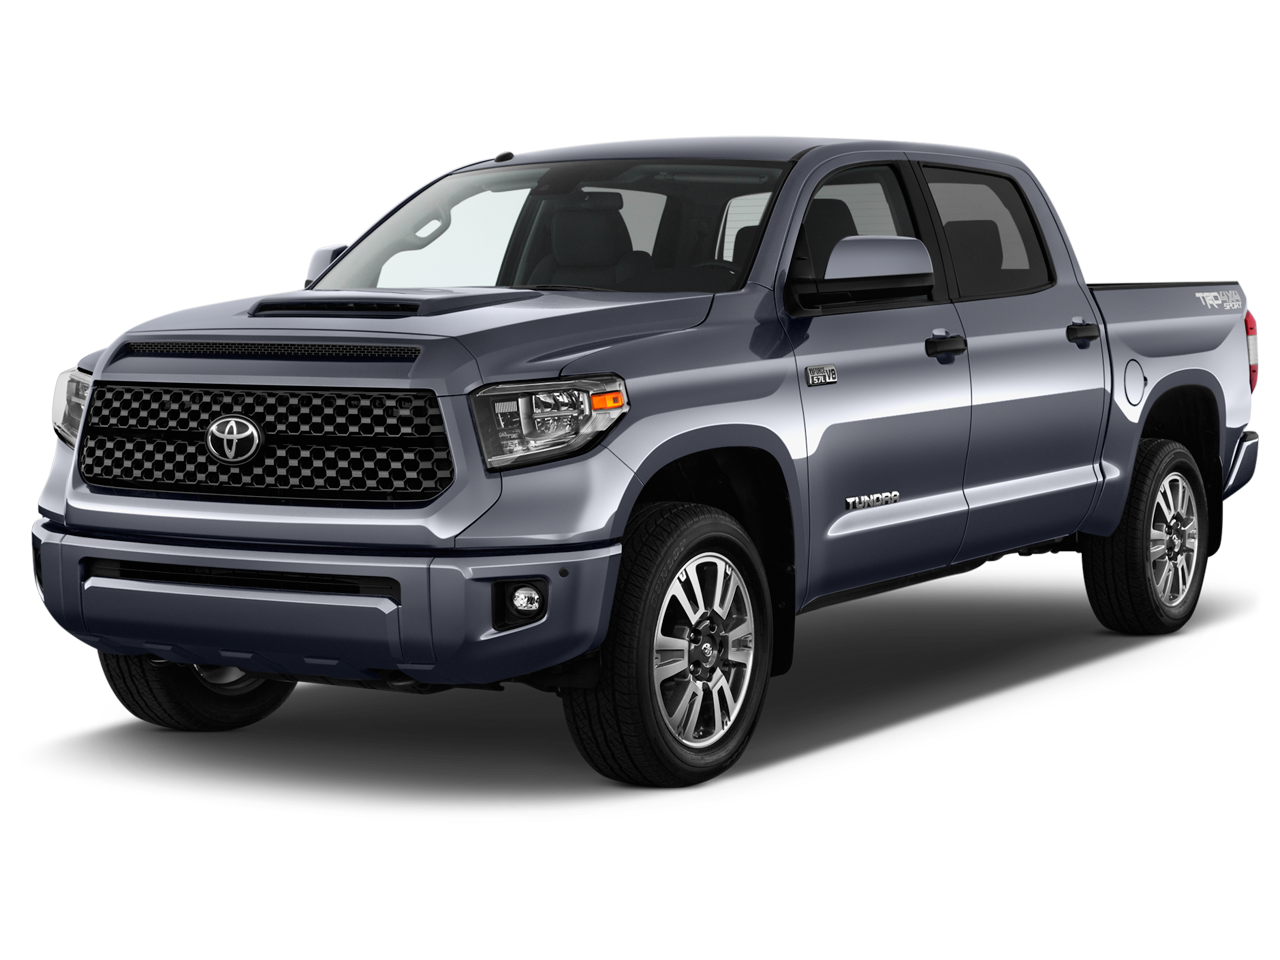 2018 Toyota Tundra for Sale in Sioux City, IA - Rick Collins Toyota